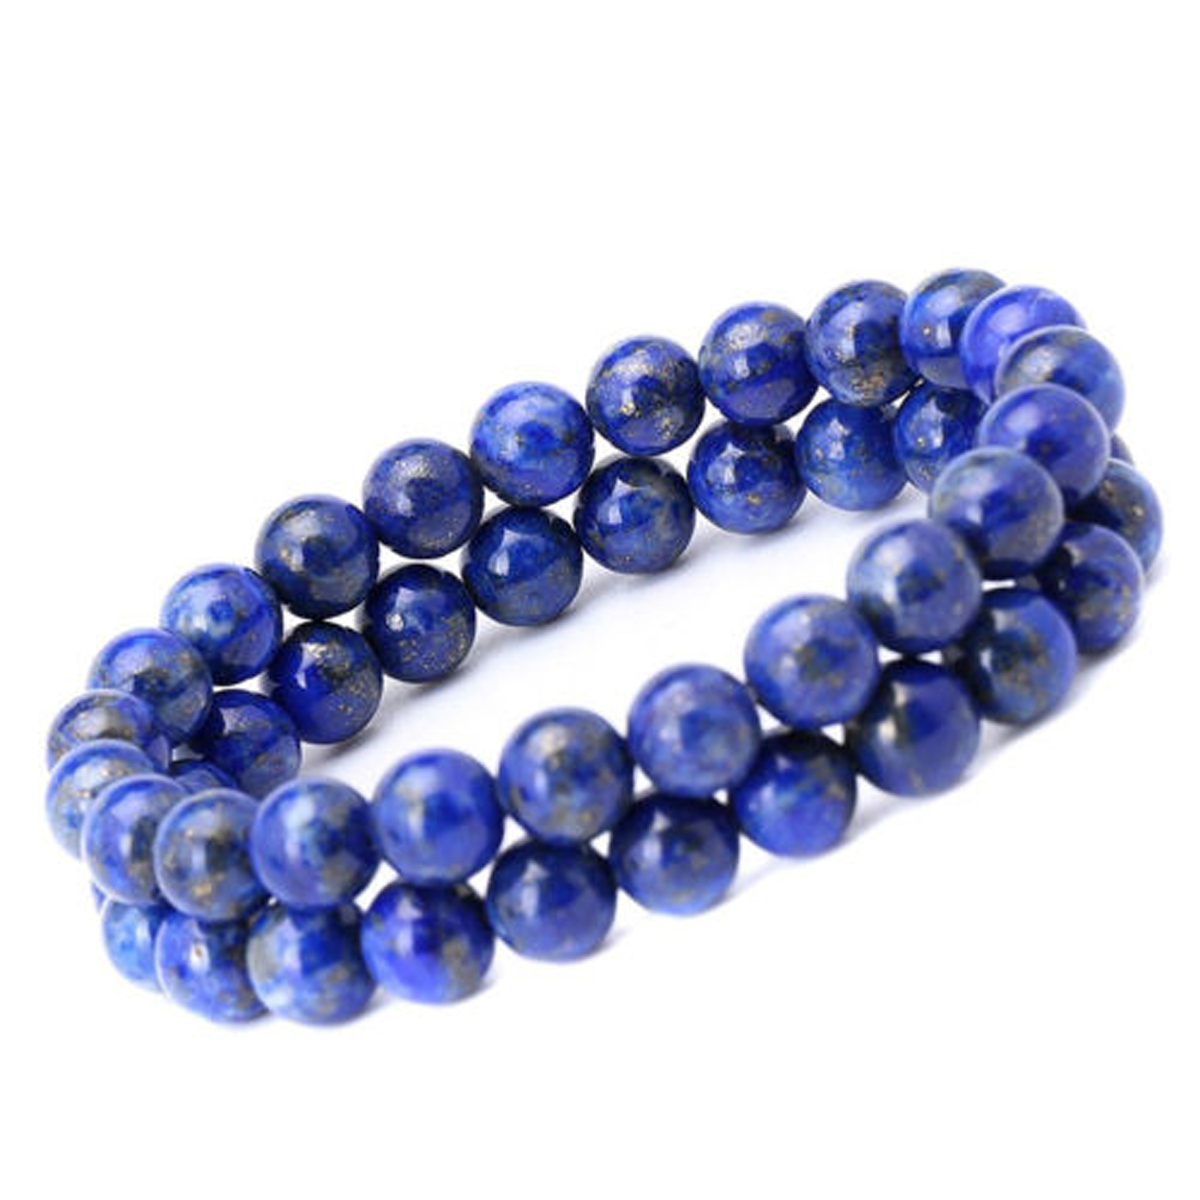 n deen product stone bracelet blue lake